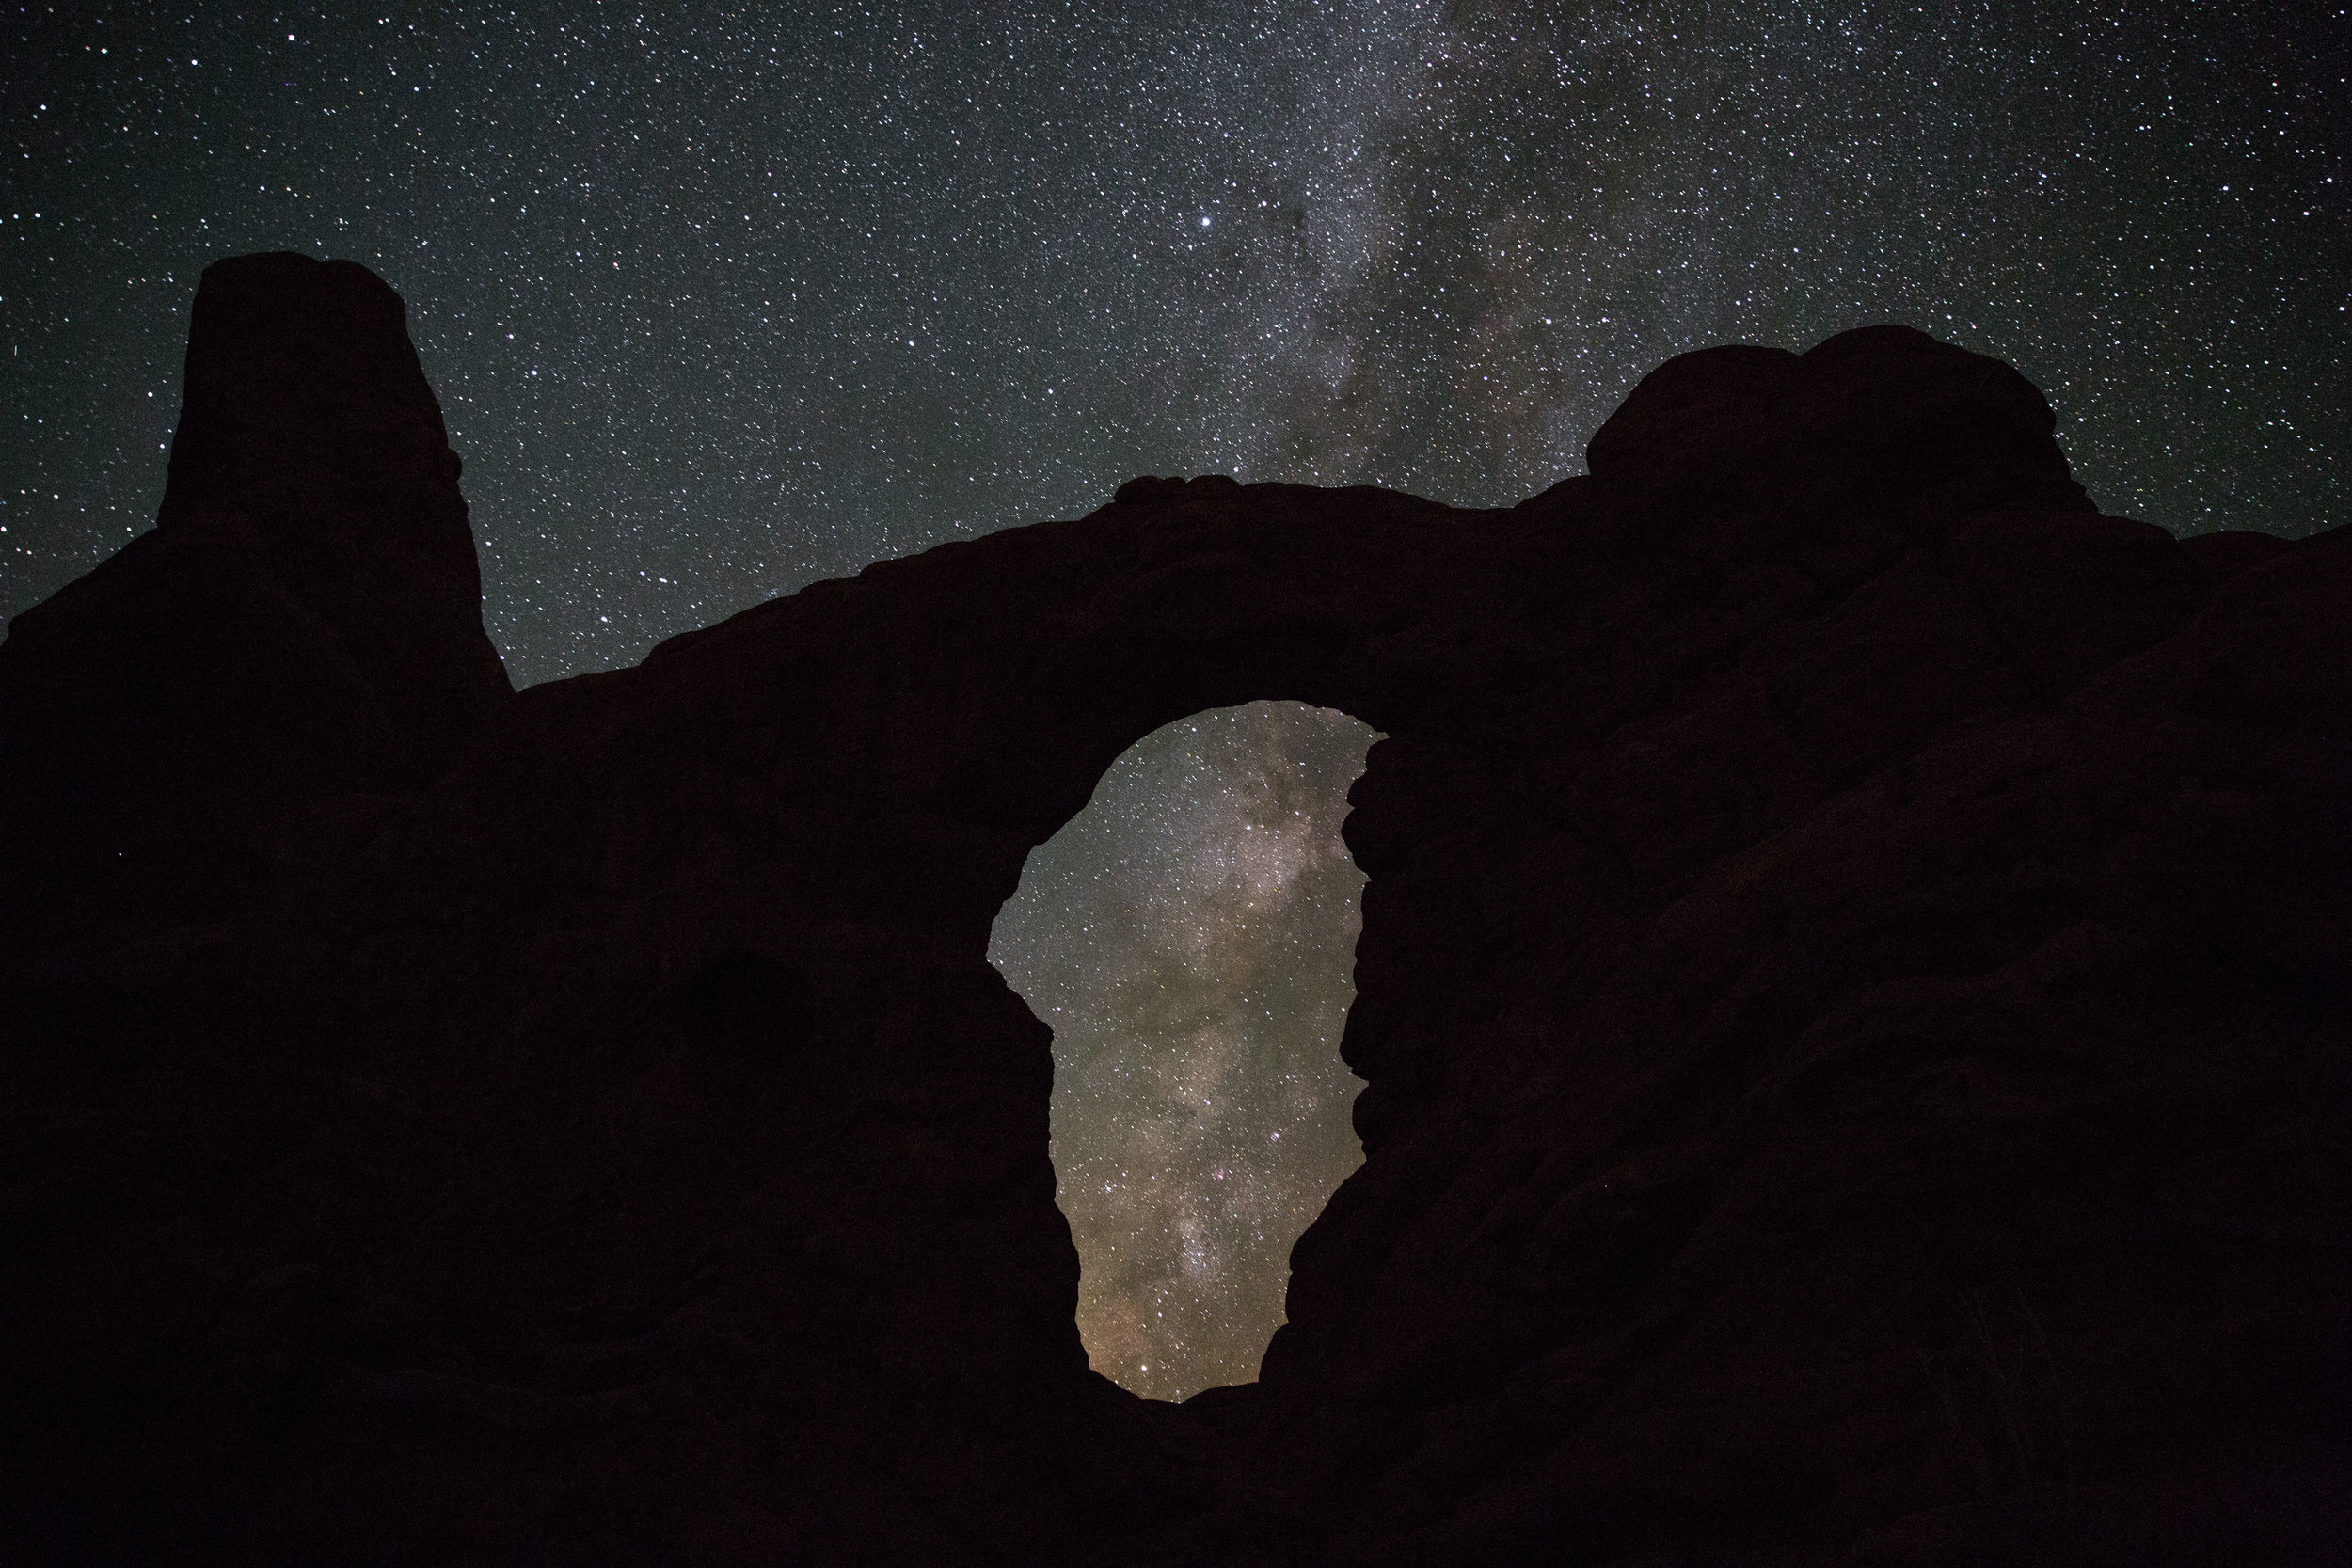 Turret Arch At Night, Turret Arch, Arches National Park, Night Photography, Arches, Astrophotography, Define Fettle Travels, Milky Way